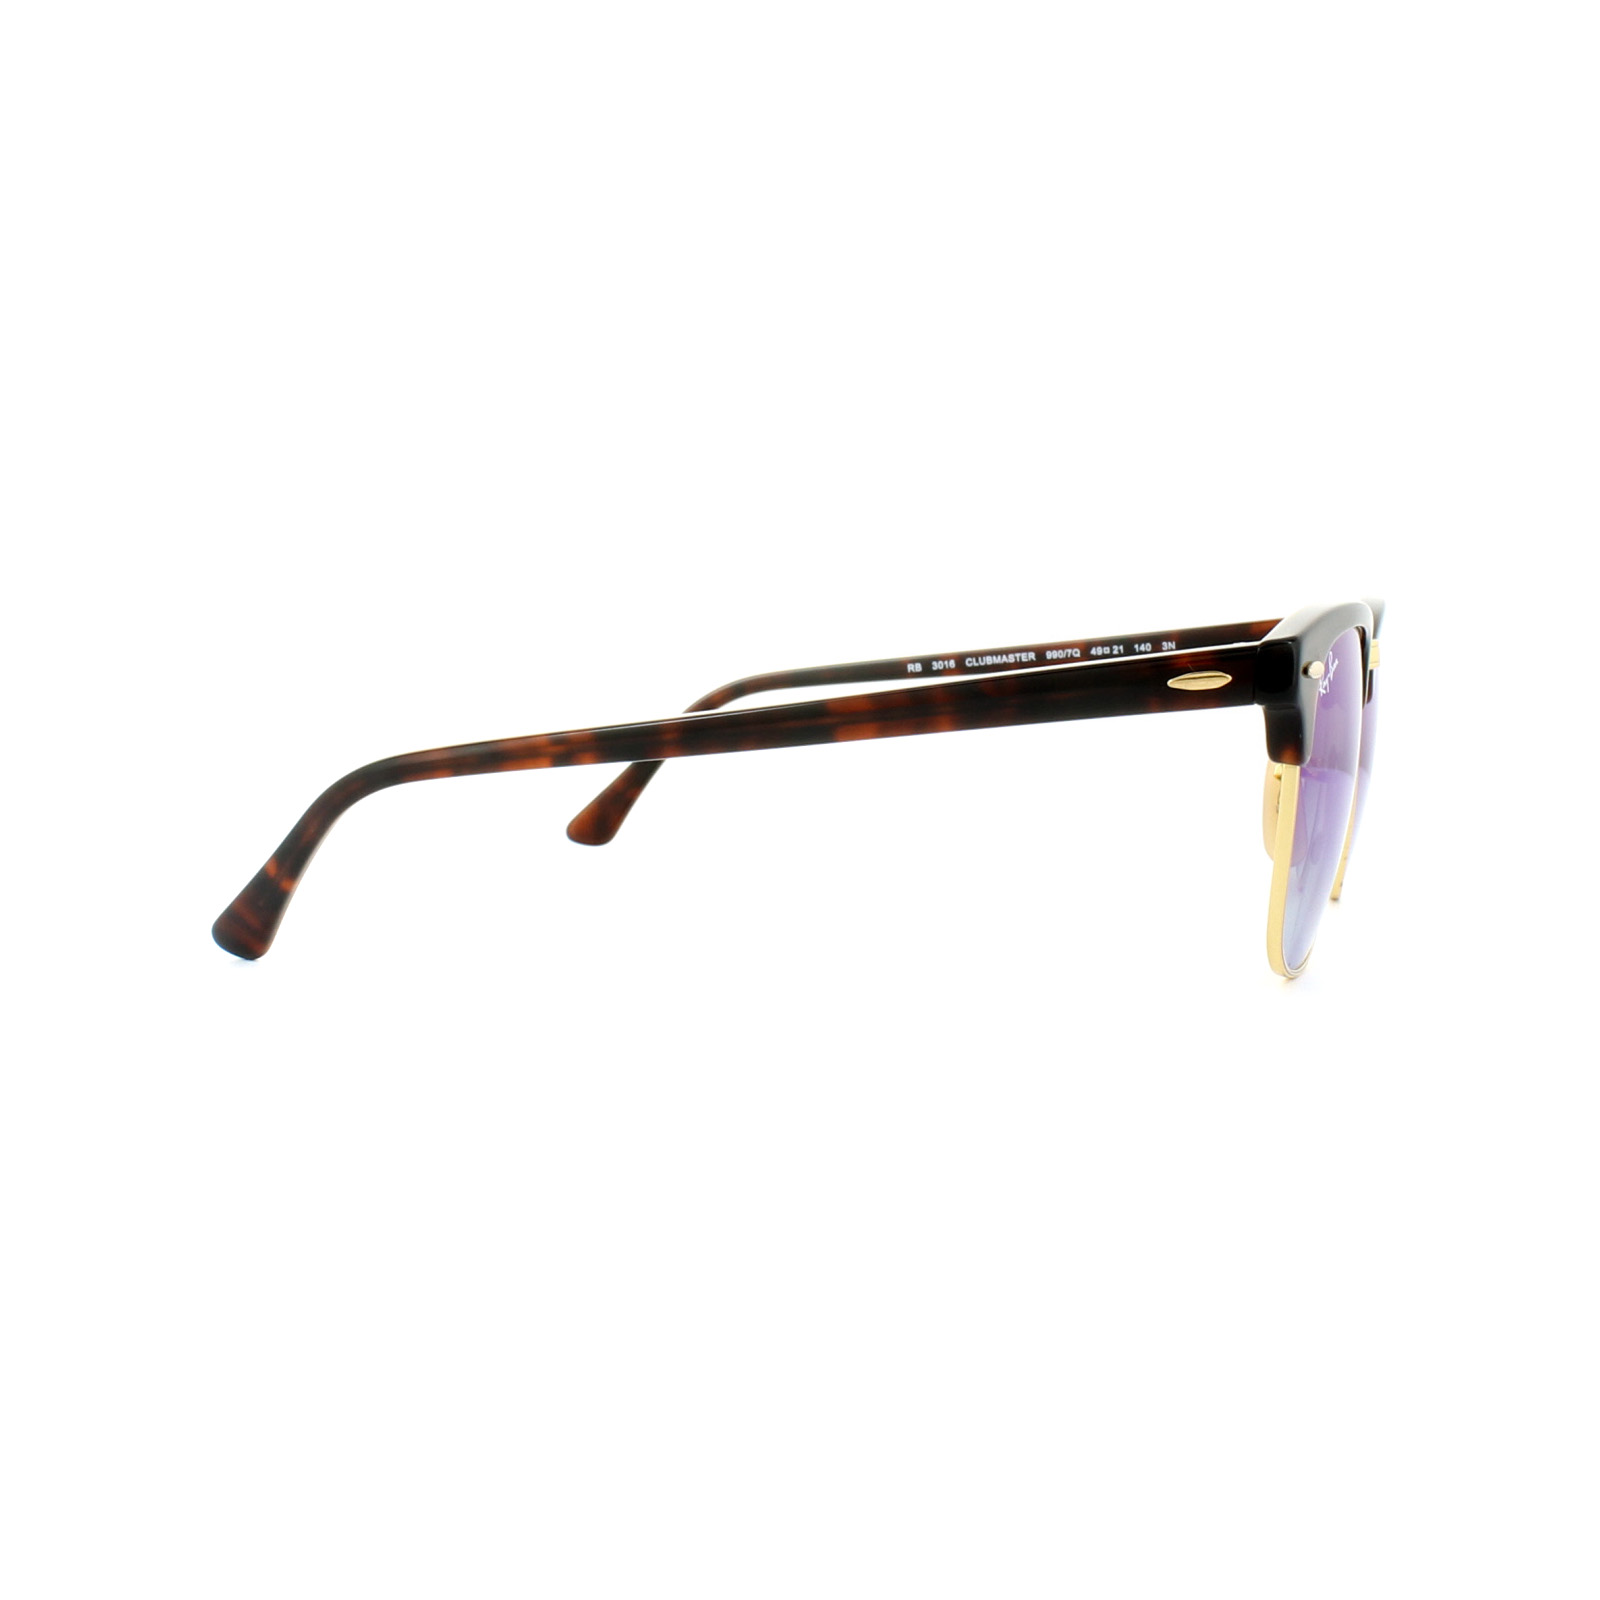 836dce46b3 Sentinel Ray-Ban Sunglasses Clubmaster 3016 990 7Q Tortoise Blue Gradient Flash  Mirror S